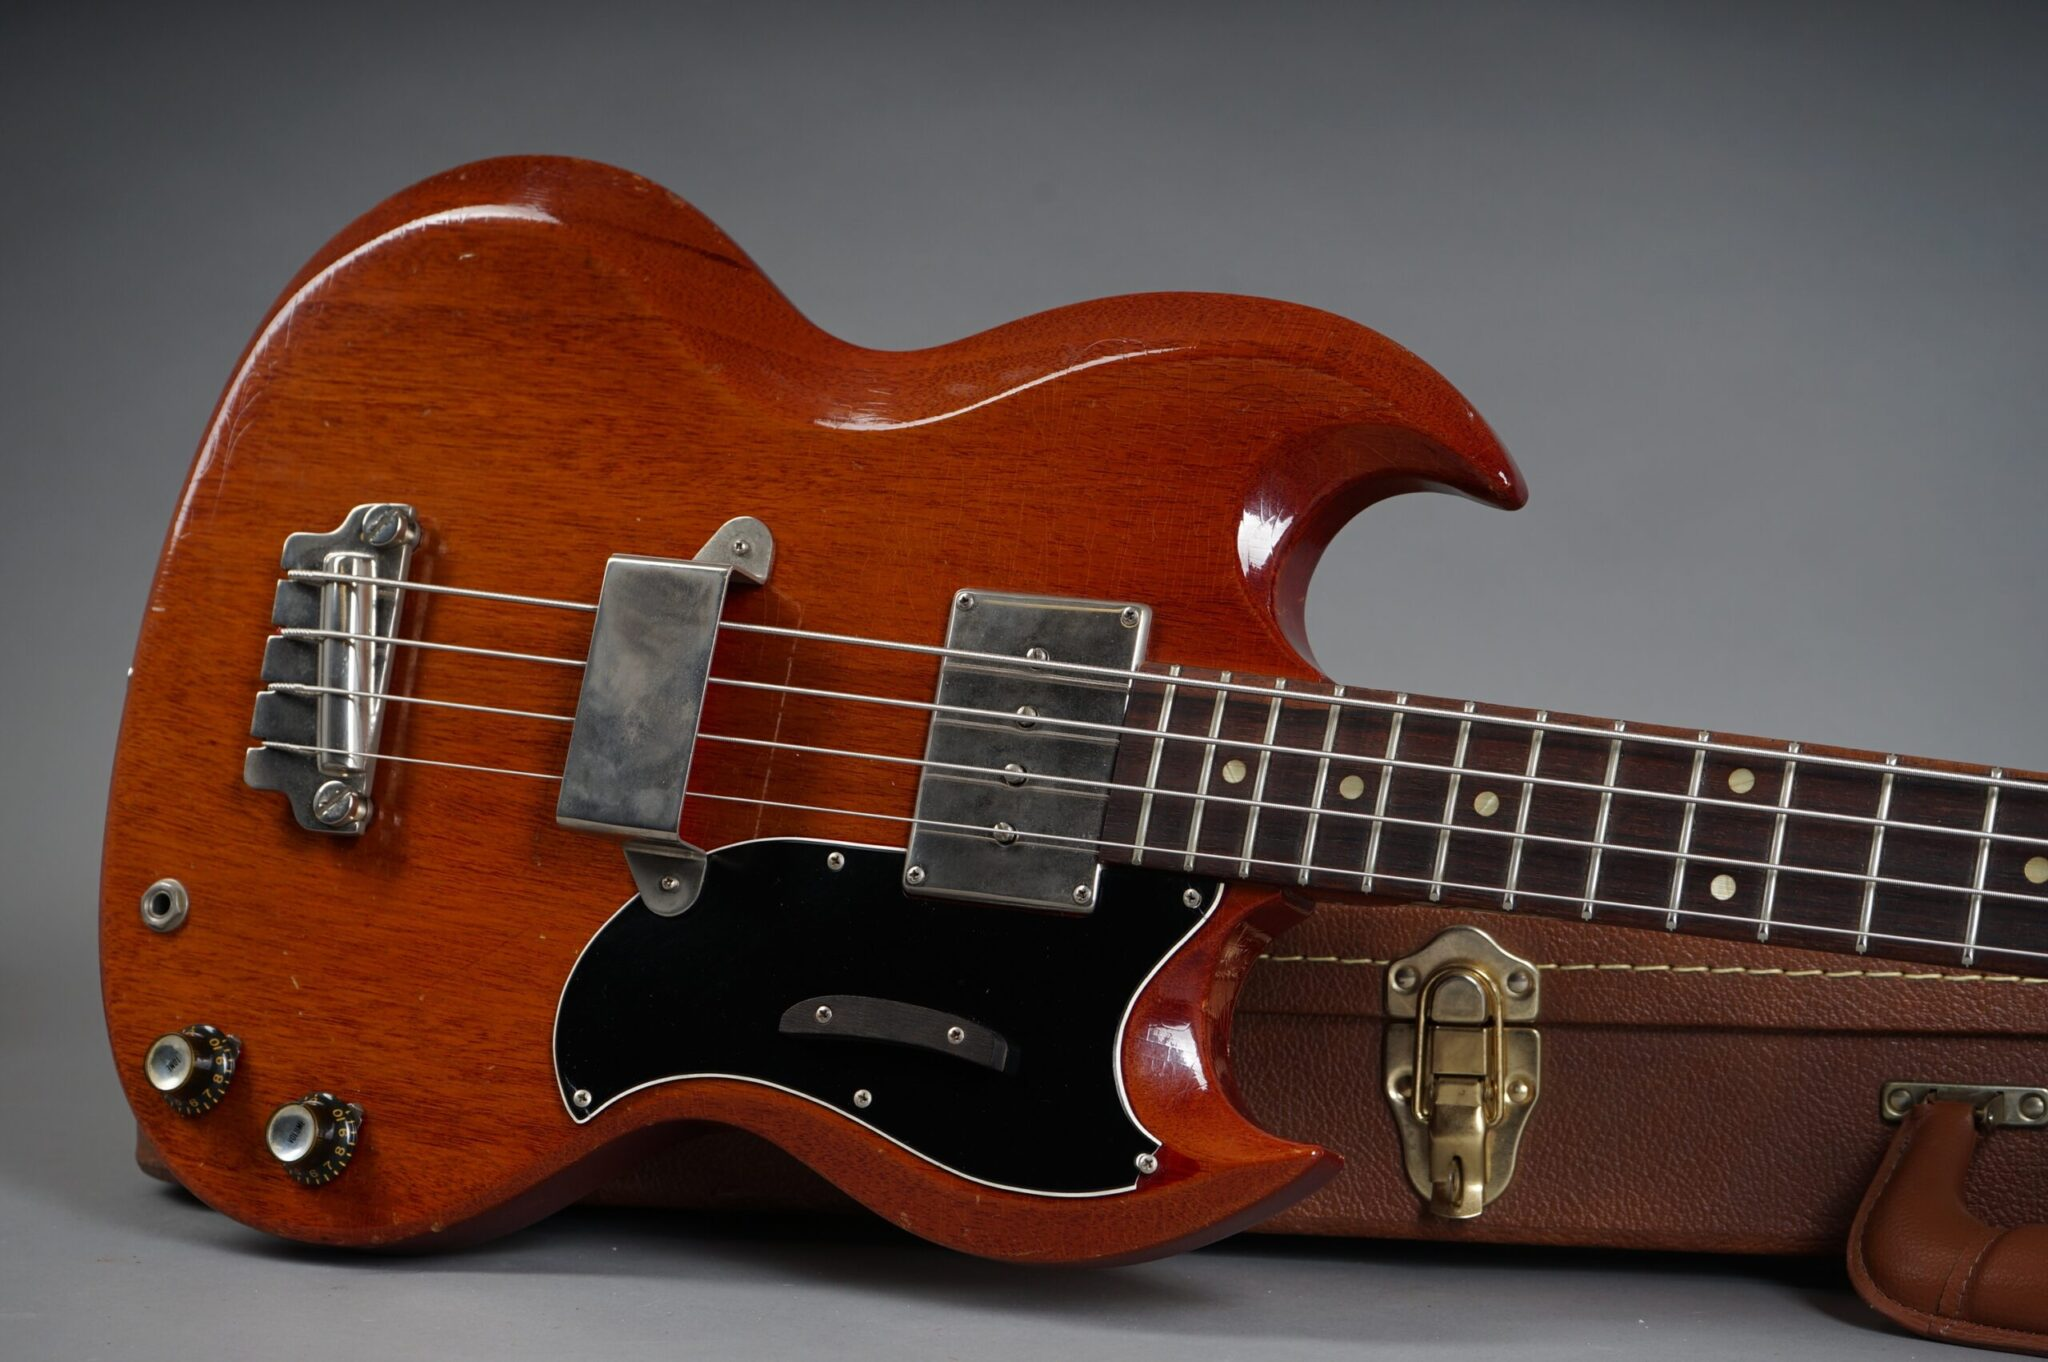 https://guitarpoint.de/app/uploads/products/1963-gibson-eb-0-bass-cherry/1963-Gibson-EB-0-Cherry-123817-19-scaled-2048x1362.jpg